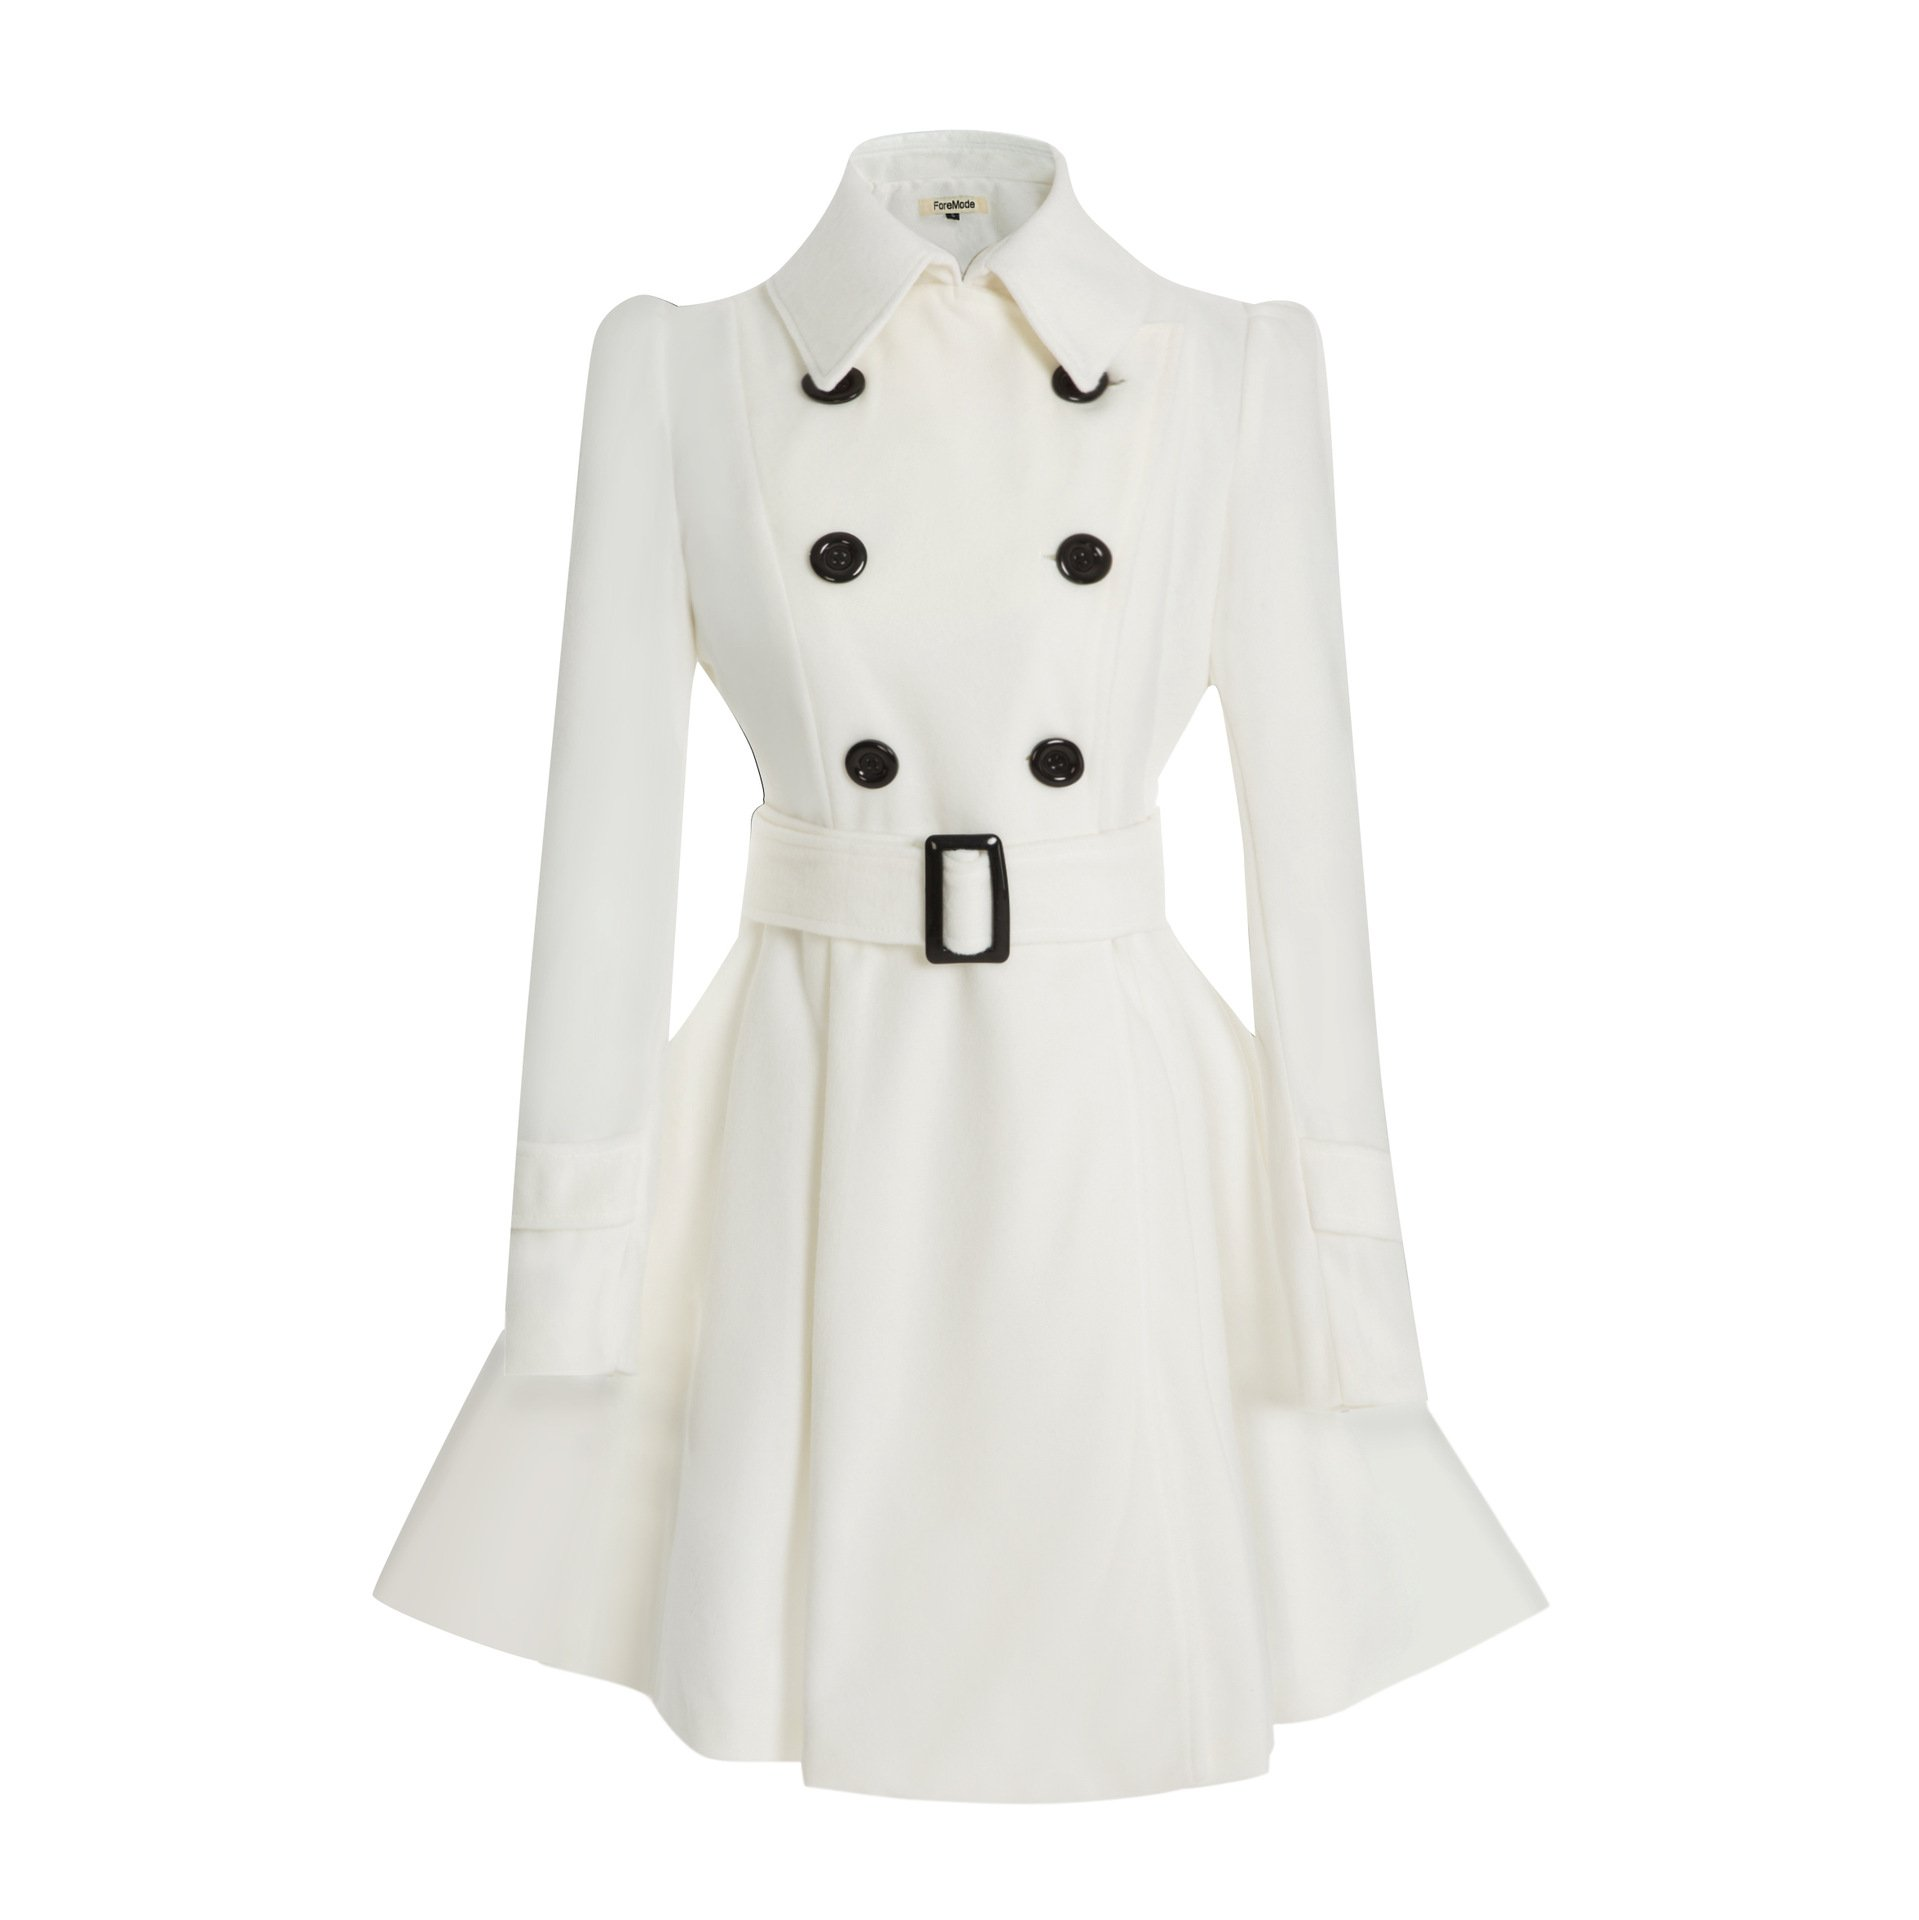 ForeMode Women Double Breasted Trench Coat with Belt Buckle Spring Mid-Long Long Sleeve Casual Dresses Style Outwear(White M)